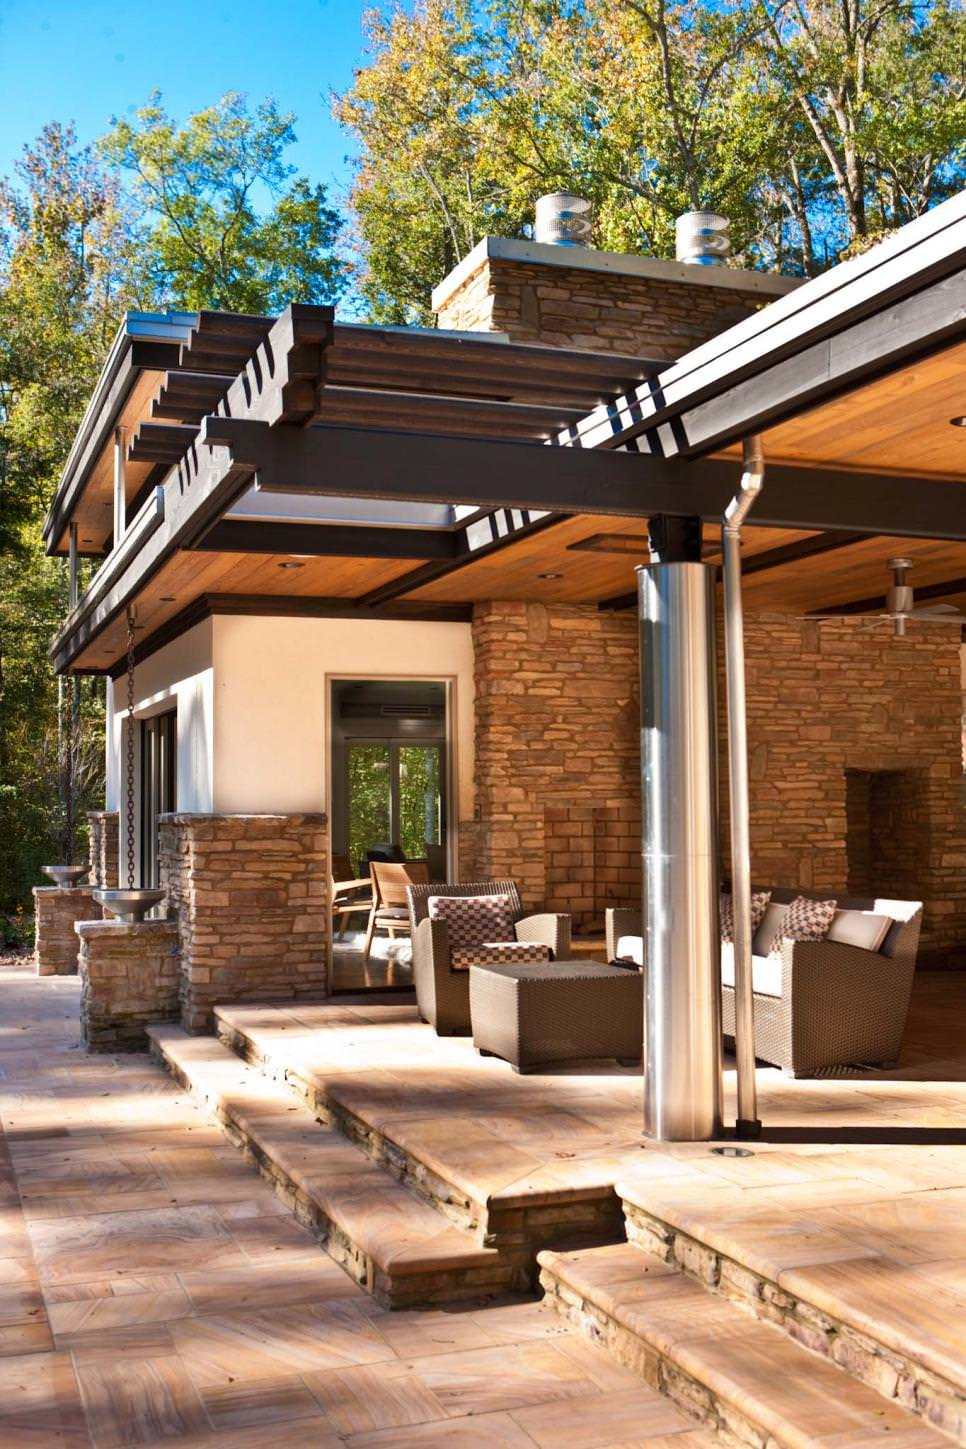 Roof Design Ideas: 24+ Patio Roof Designs, Ideas, Plans.